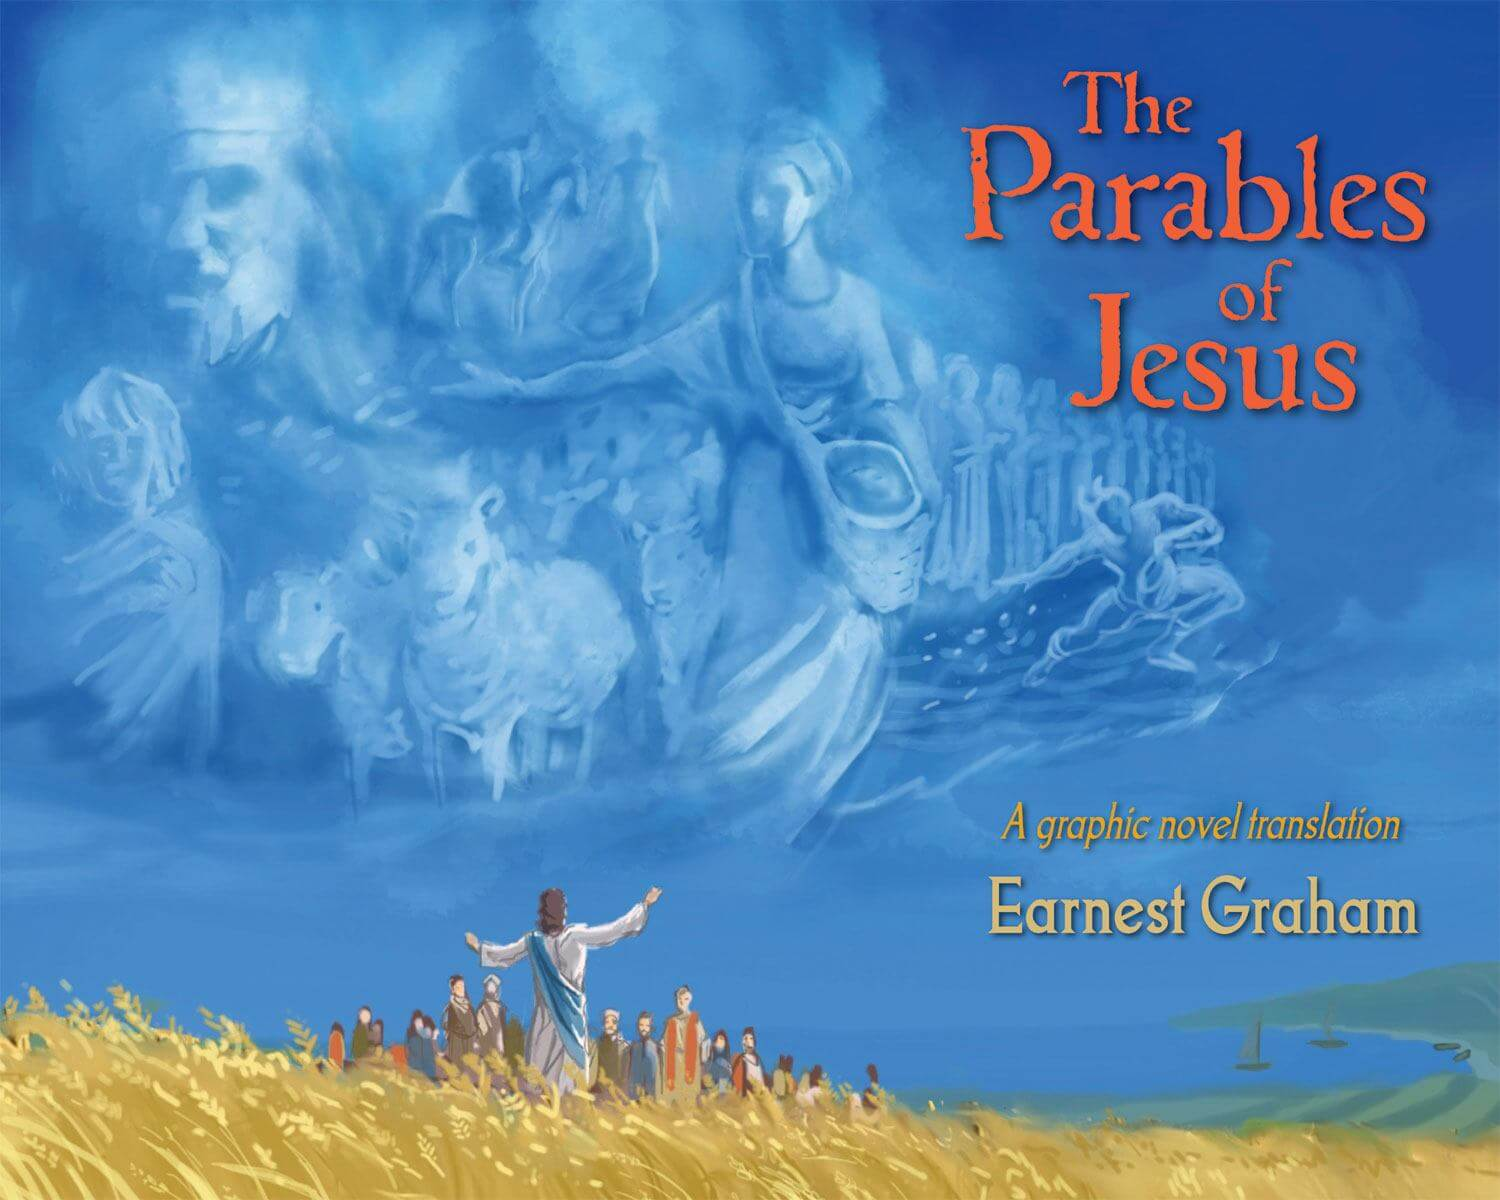 The Science Of Getting Kids Organized >> [PDF] The Parables of Jesus - Well-Trained Mind